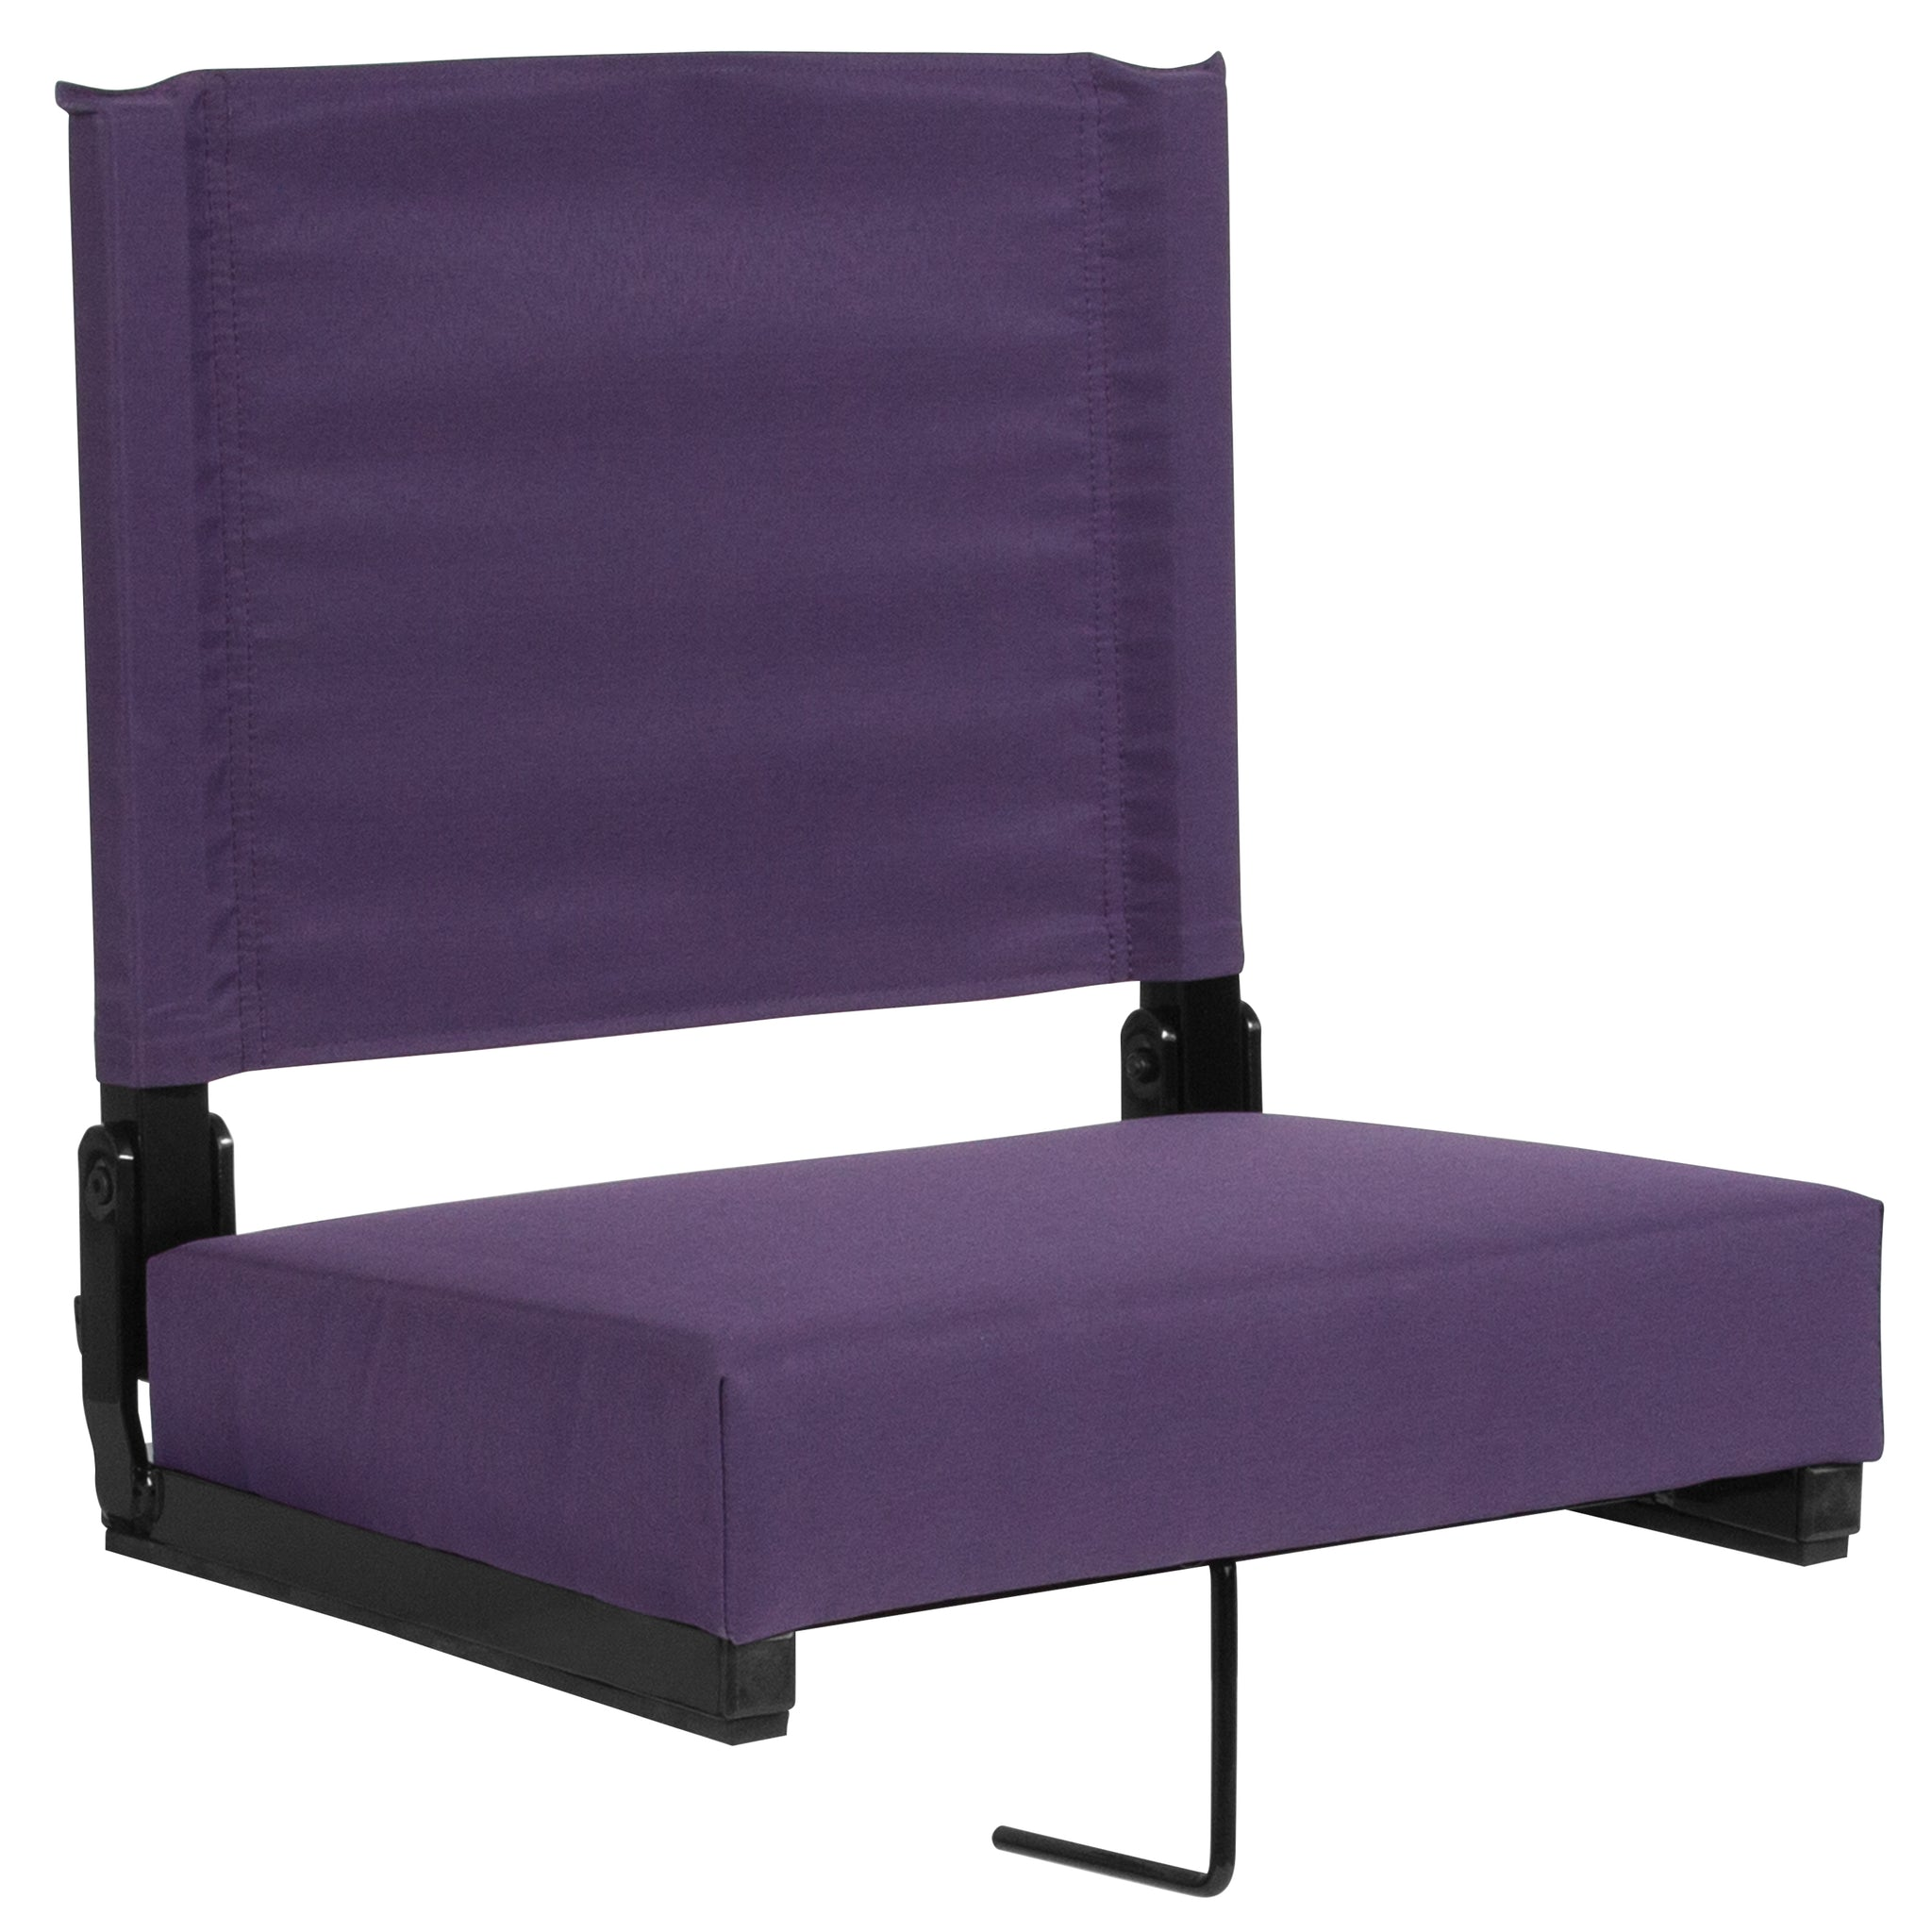 Grandstand Comfort Seats with Ultra-Padded Seat in Dark Purple